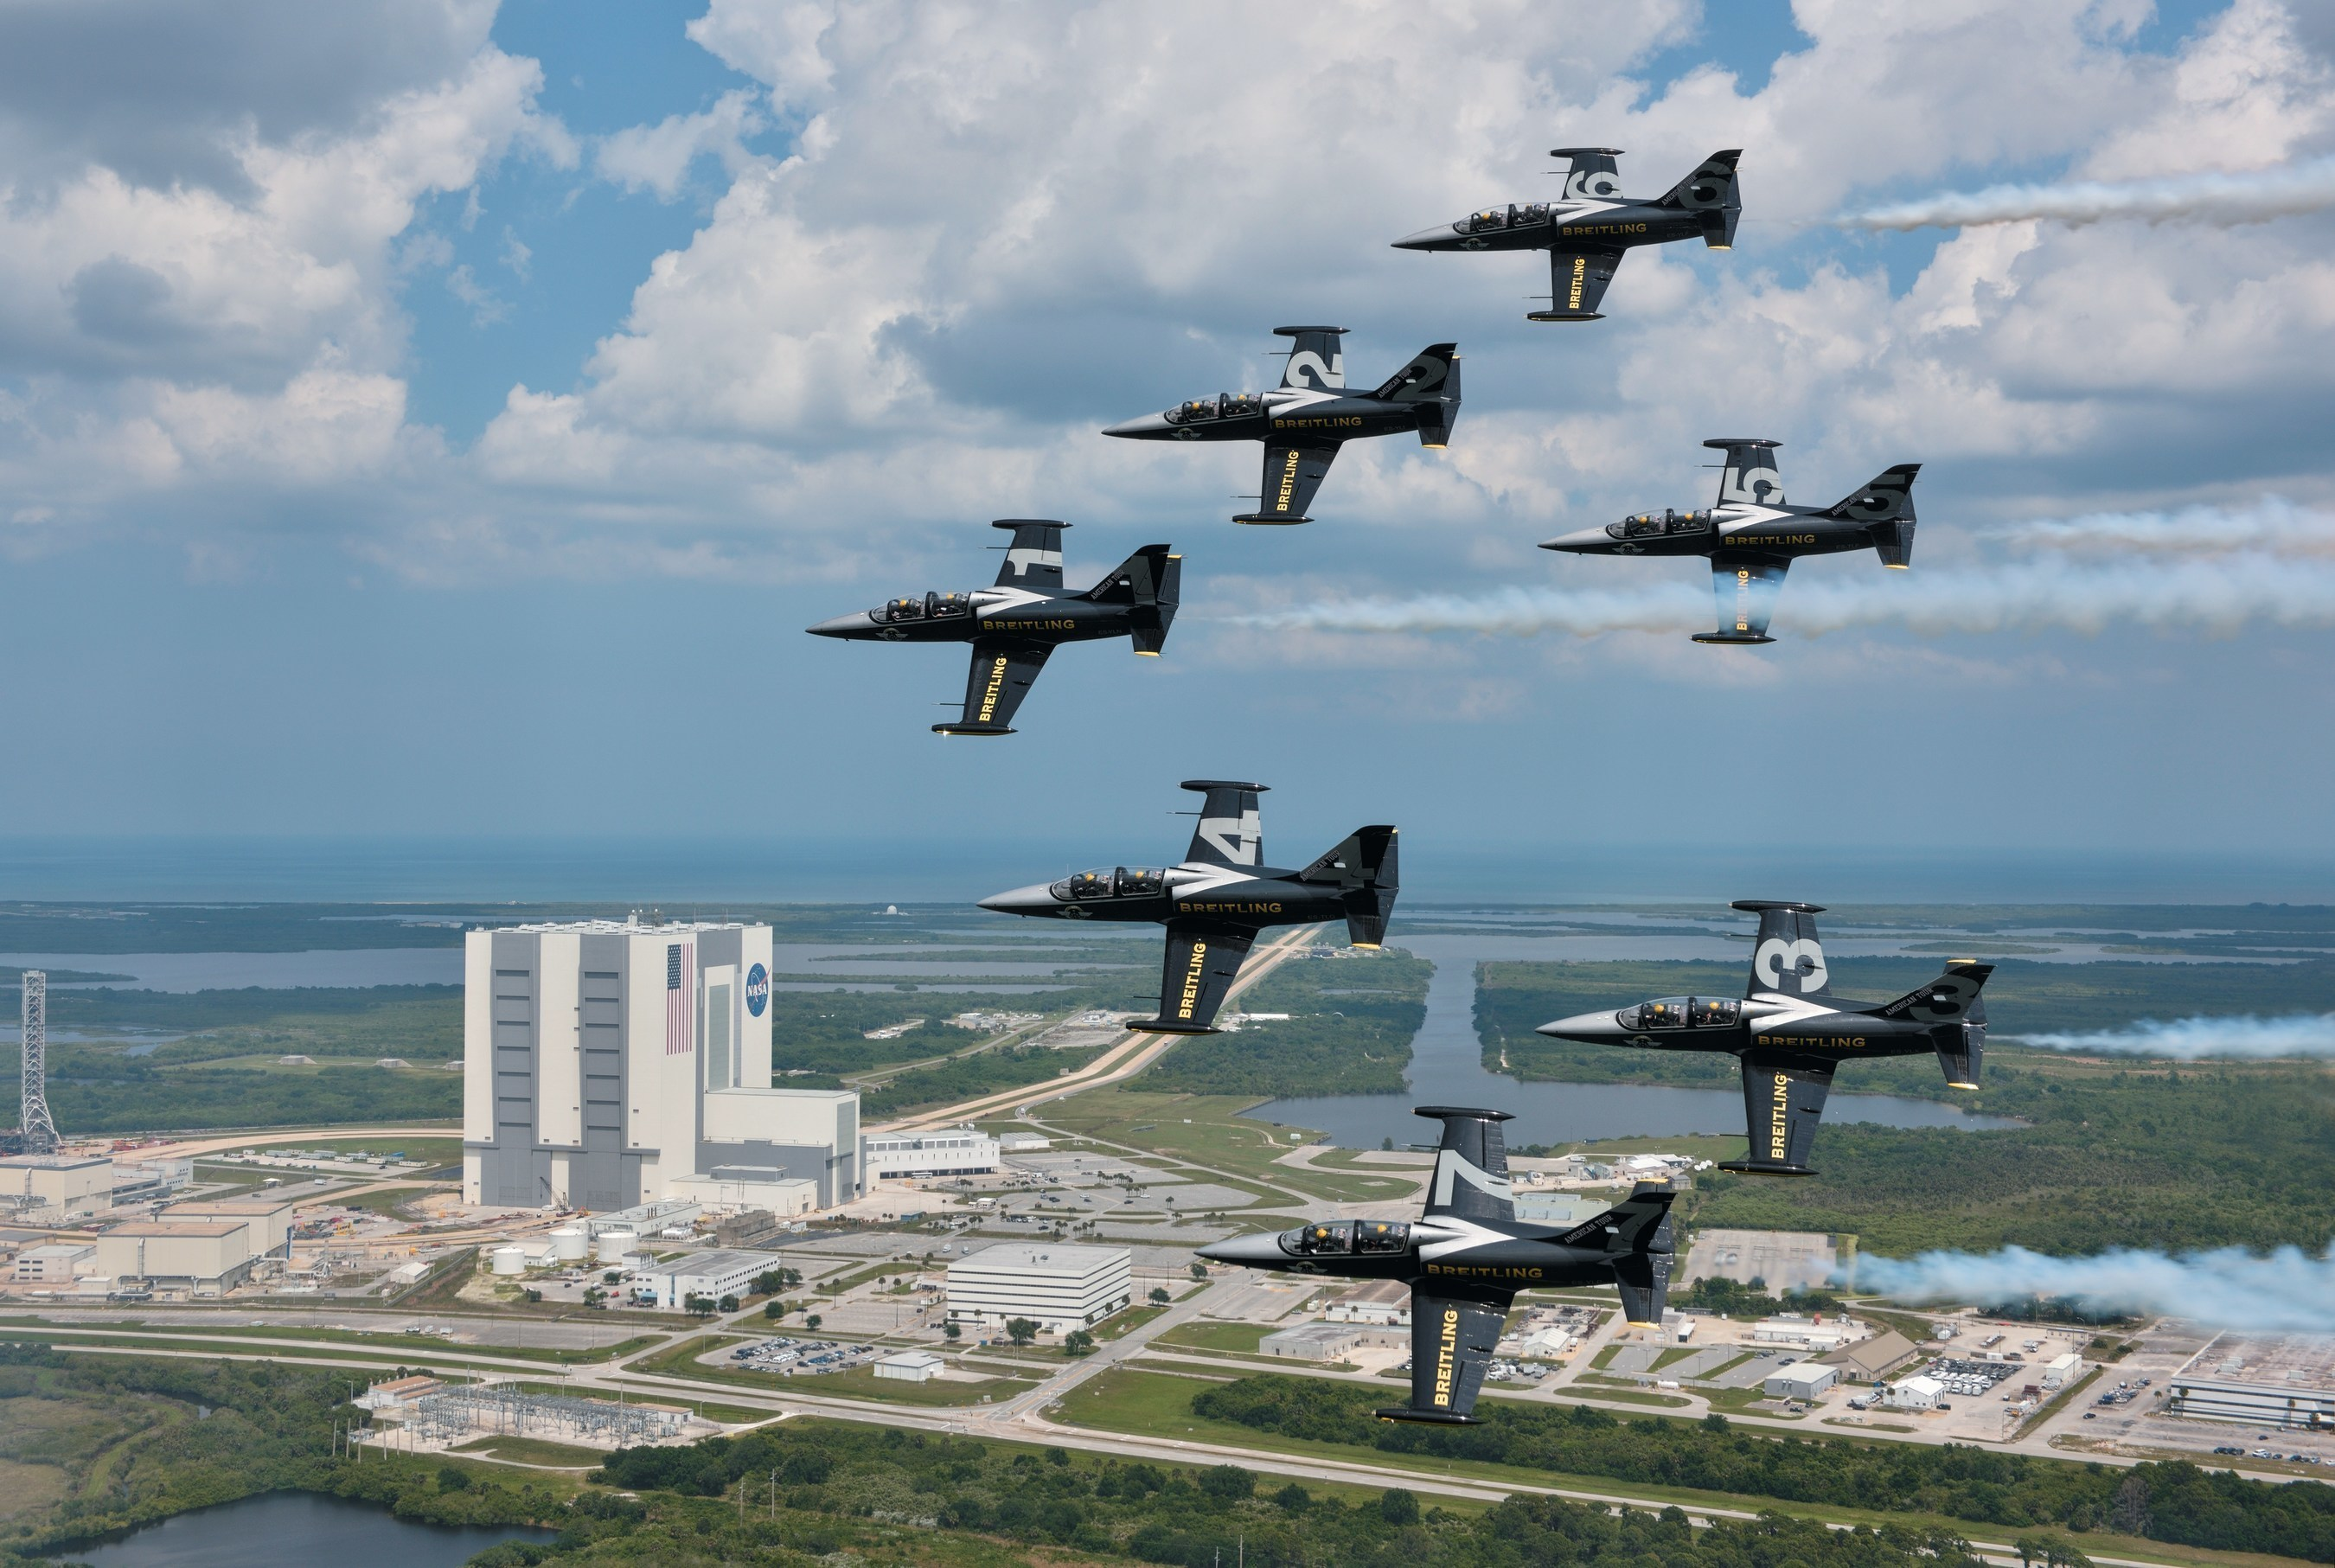 The Breitling Jet Team from Dijon, France, flew past the Kennedy Space Center to mark the start of their first American Tour. The team took off from Linder airport in Lakeland, Florida and landed in Titusville, Florida so they could visit the iconic space shuttle launch site. The team is also performing at the Sun 'n Fun Fly-In & International Expo on Friday, April 24th and Saturday, April 25th representing the independent Swiss watch company Breitling. Photo Courtesy of Breitling/Katushiko Tokunaga